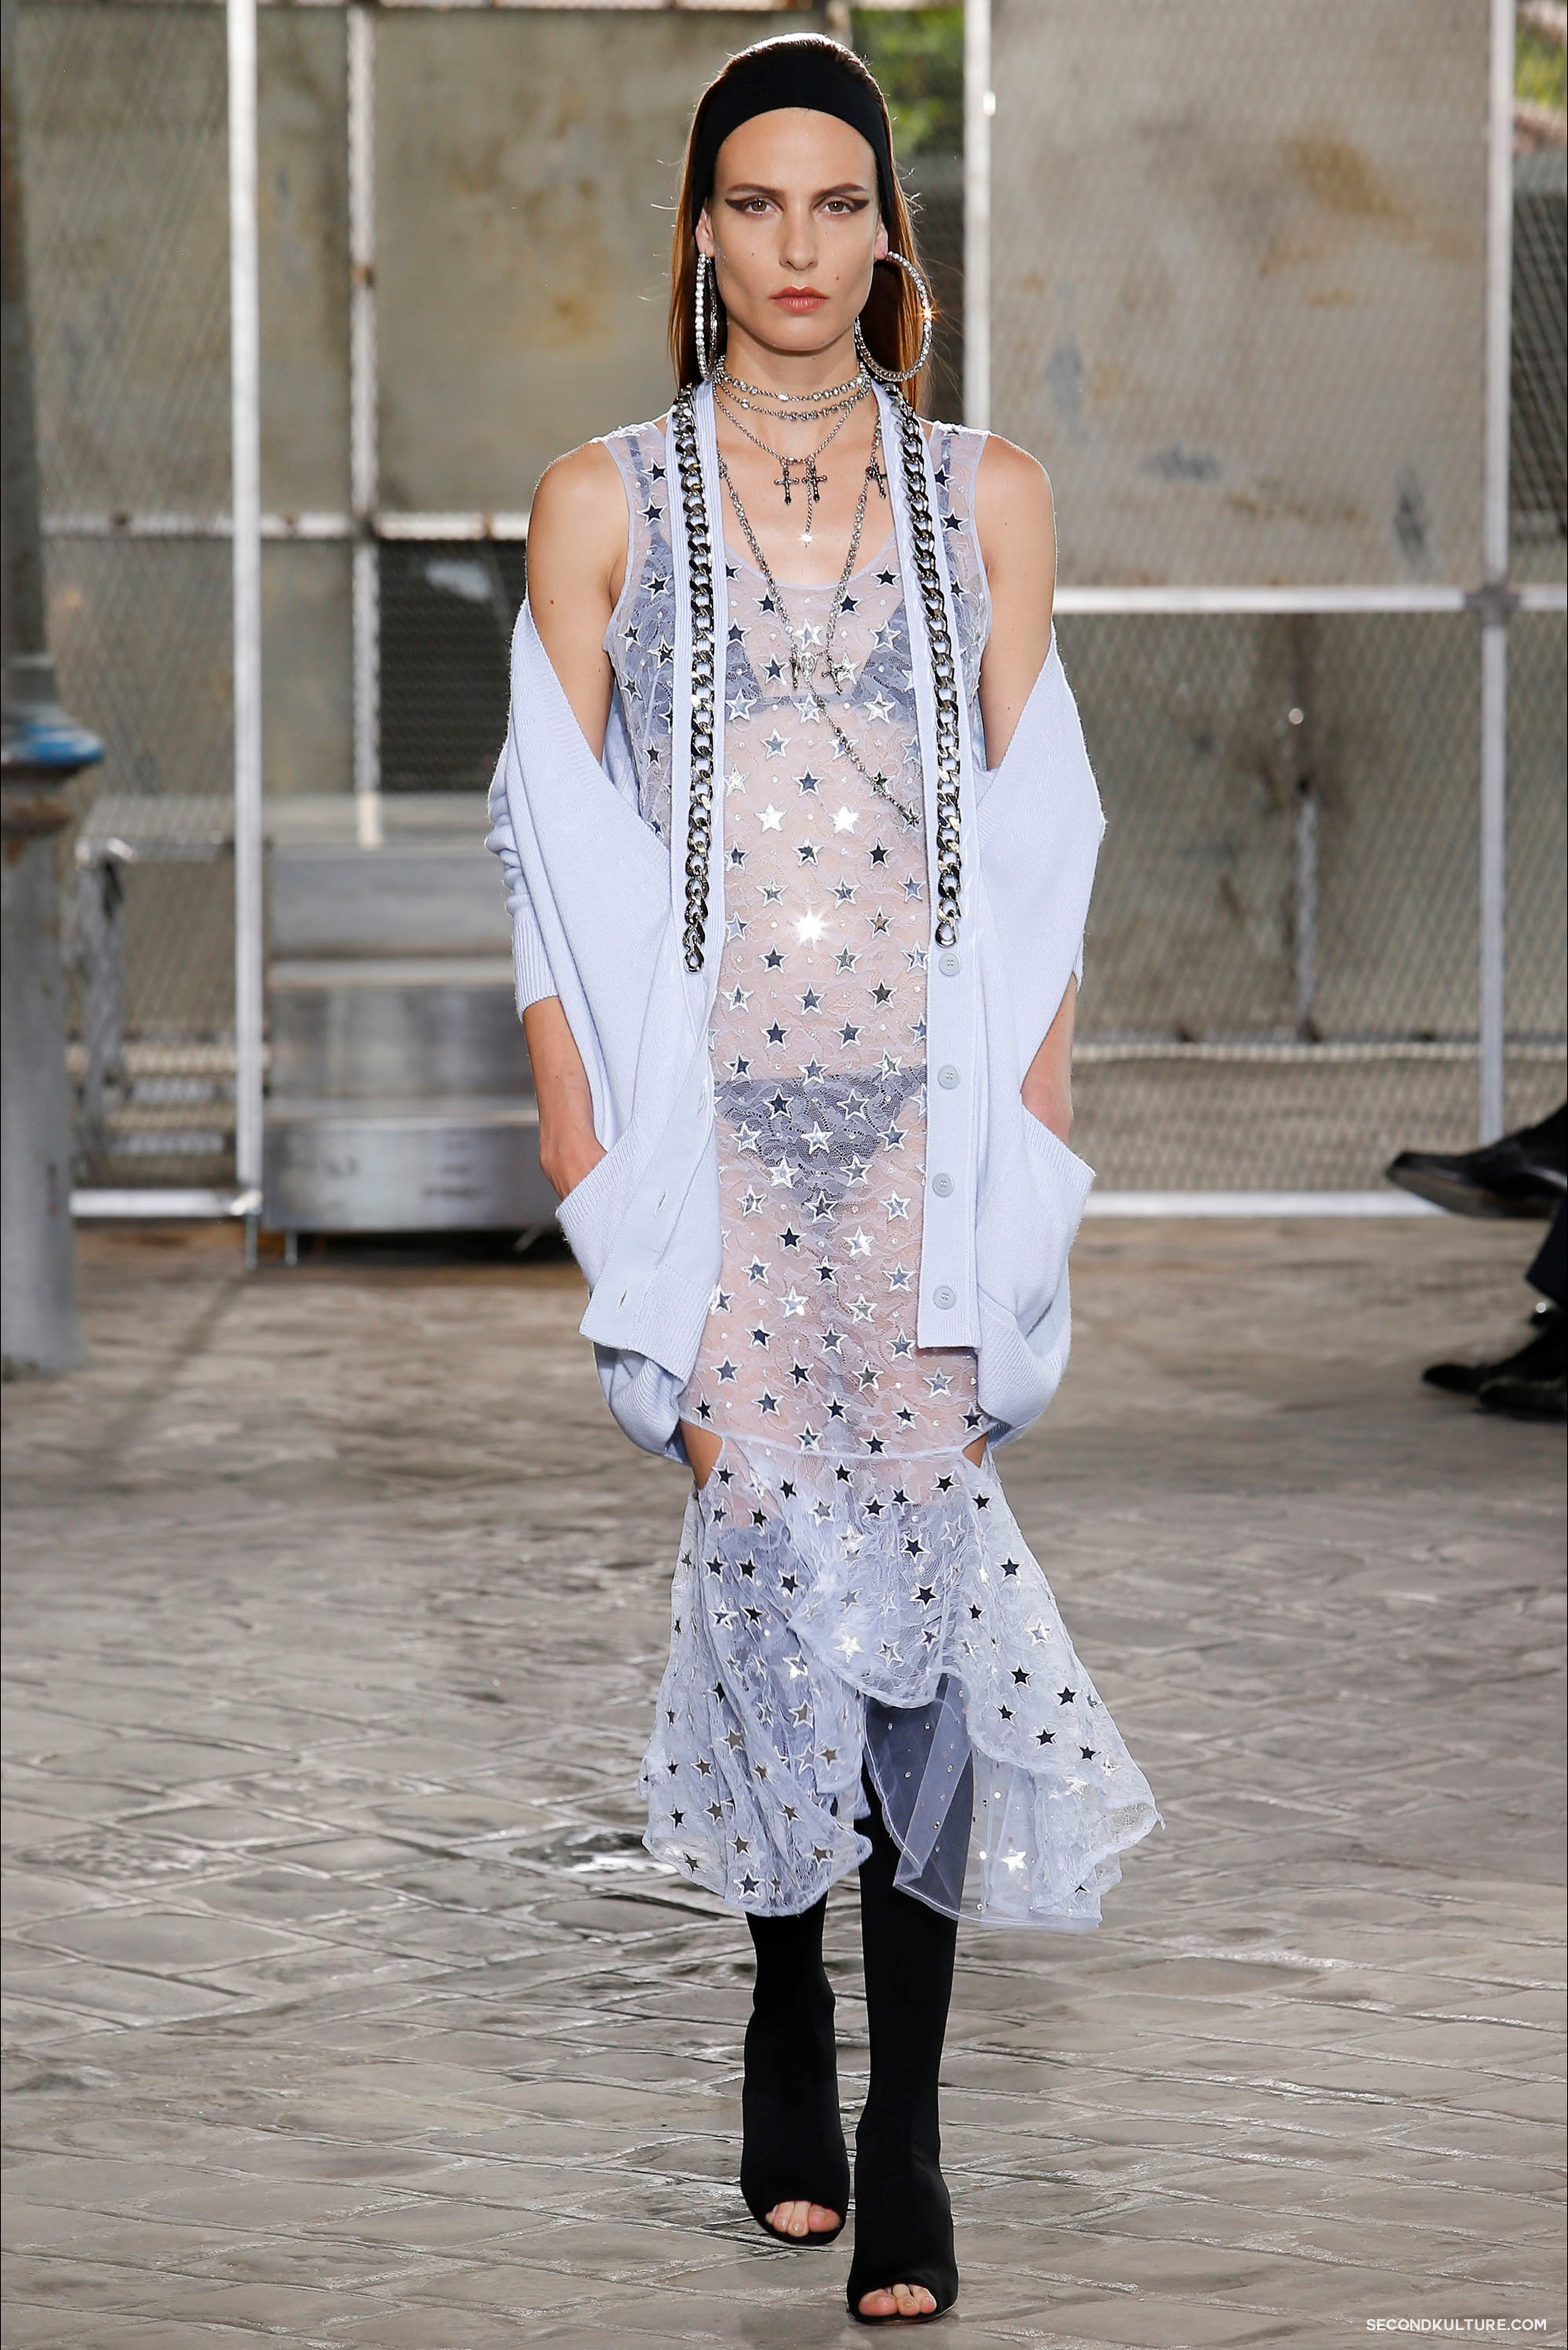 Givenchy Spring Summer 2016 Menswear Jesus Religion Chain Runway Show Look 48